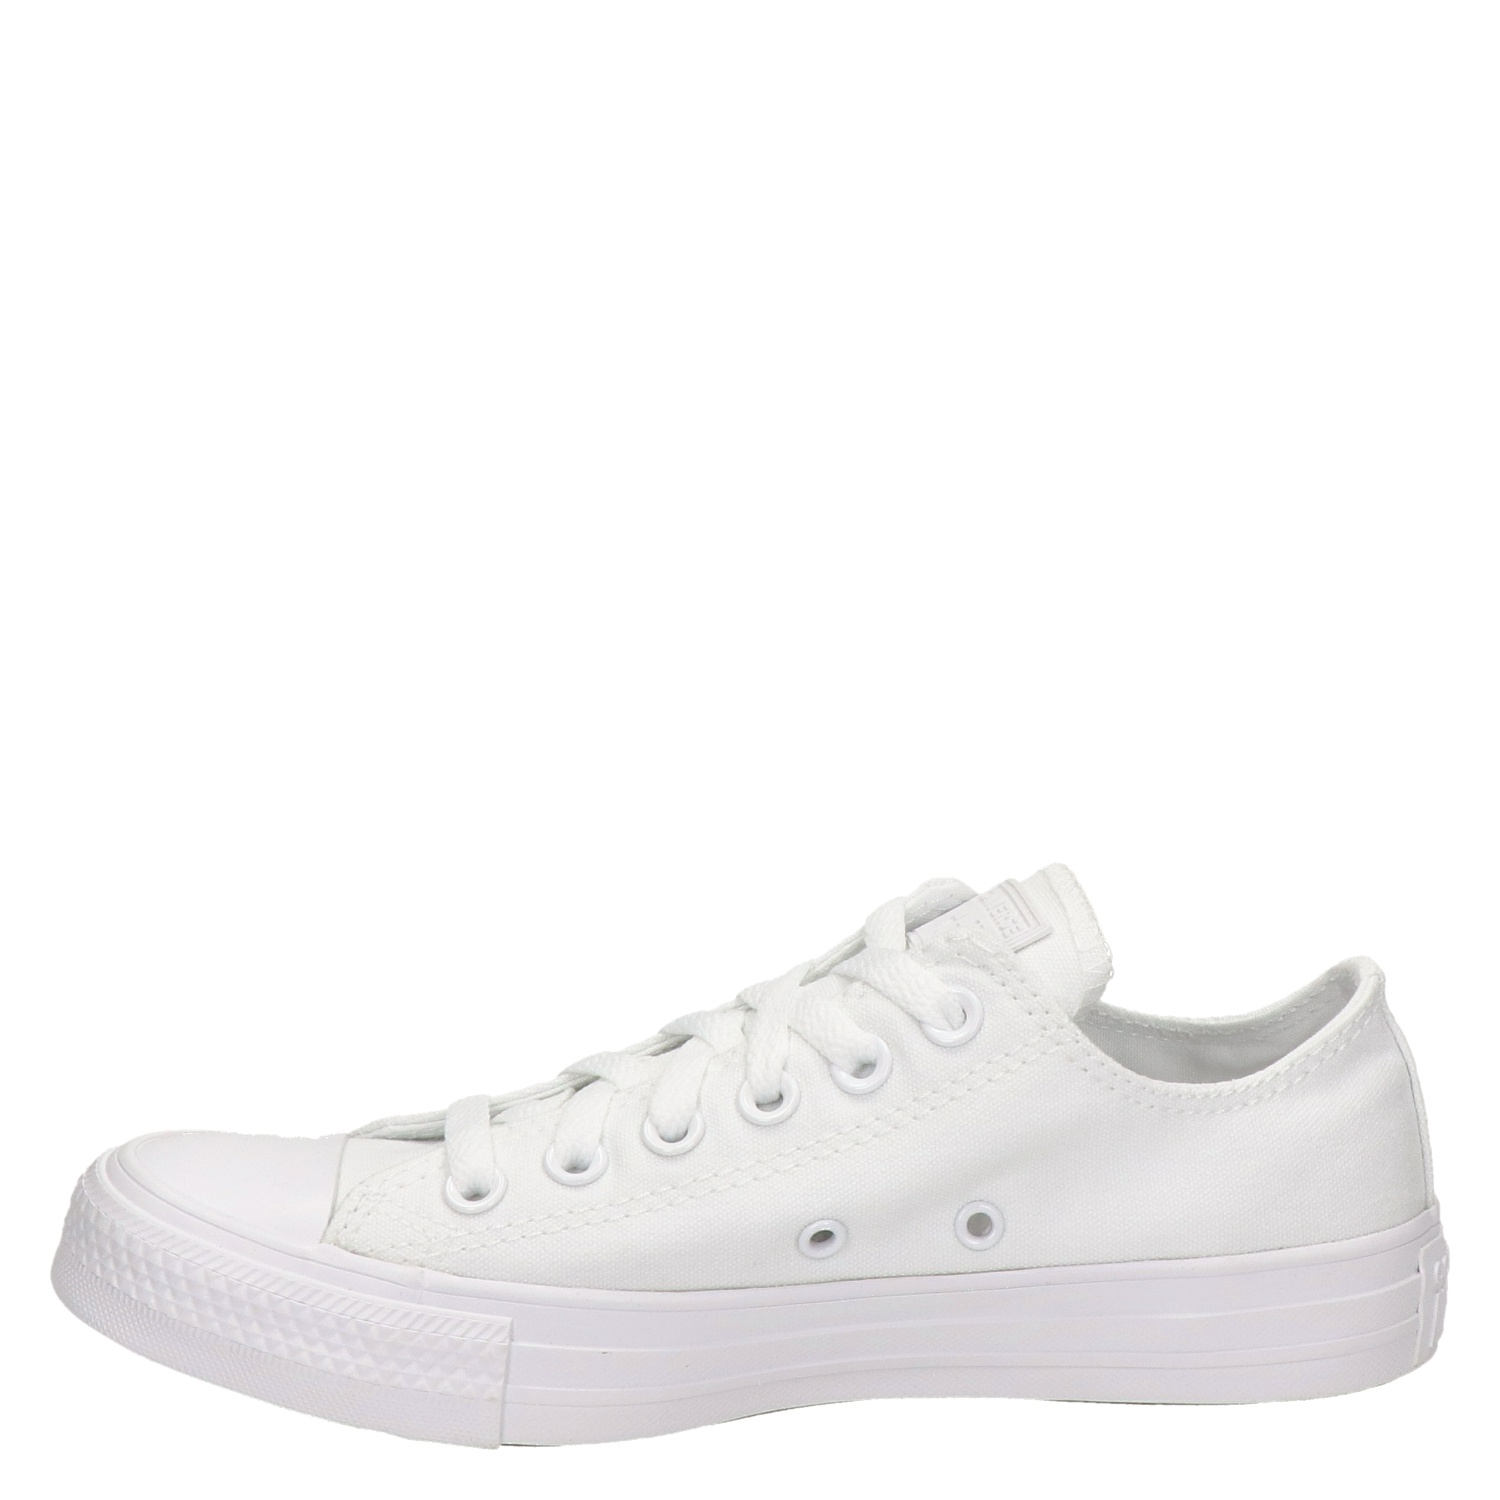 converse wit white zwart hot b373f e642e